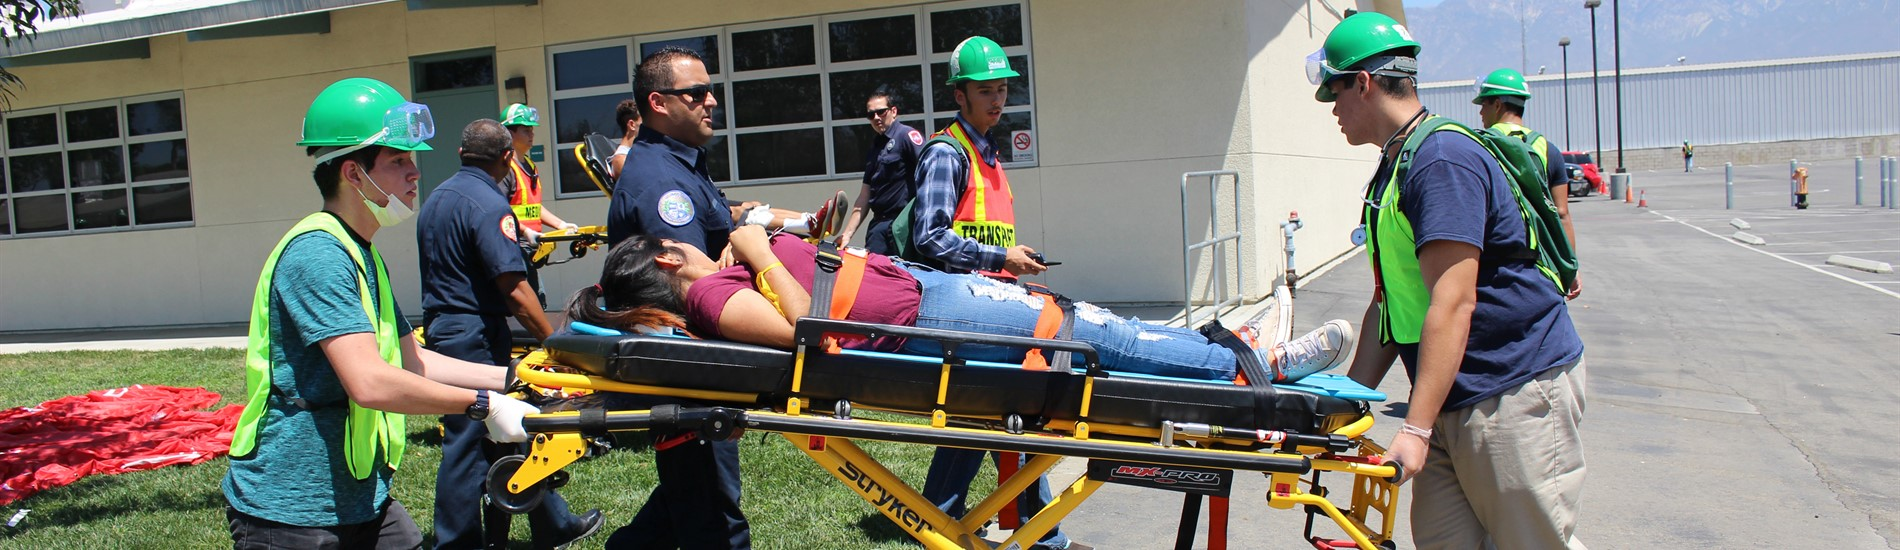 Community Emergency Response Team (CERT) Emergency Response Drill